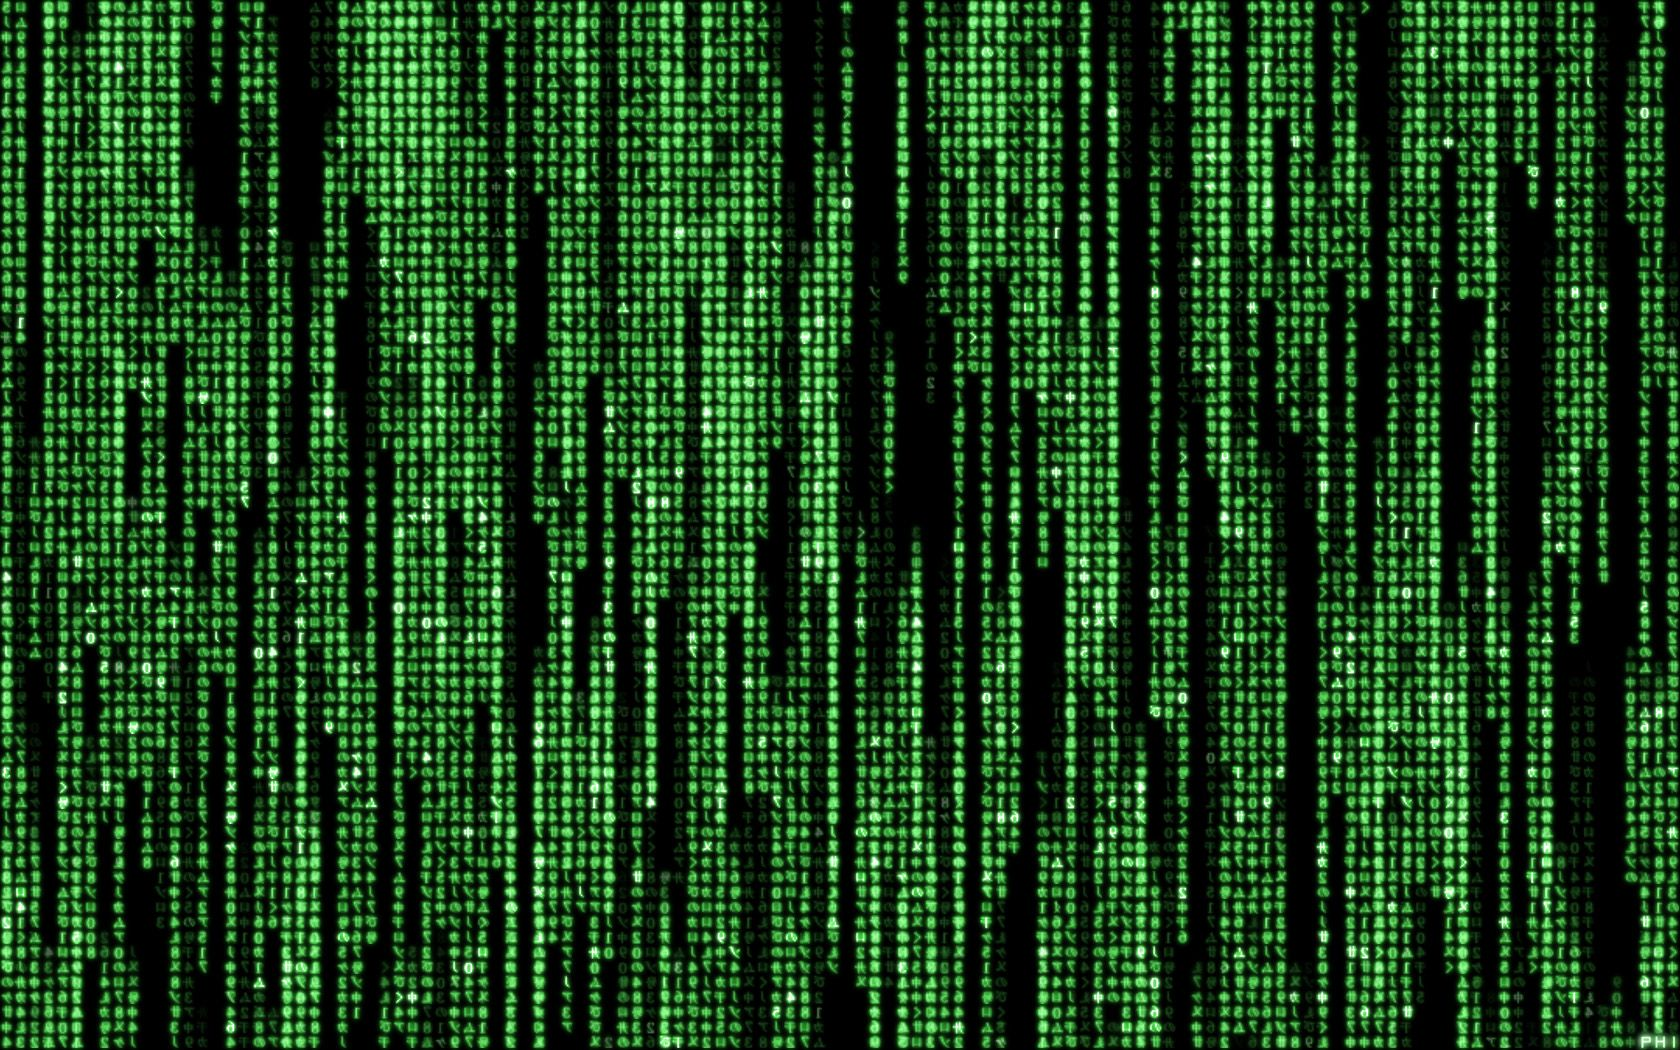 Matrix Code Wallpapers Android With High Resolution Desktop Wallpaper On Computers Category Similar With Blue Code Green Red Flicks Pinterest Movie